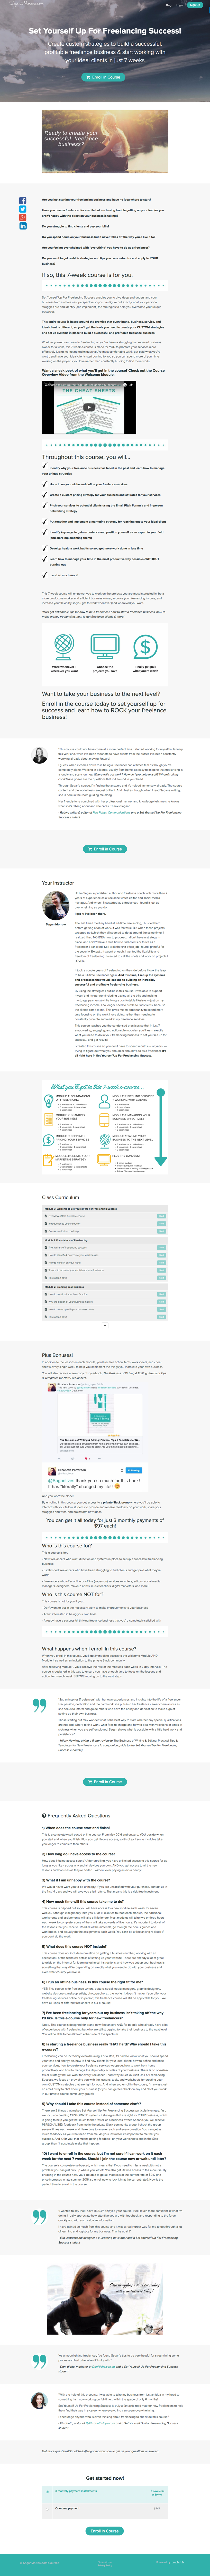 """""""Set Yourself Up For Freelancing Success"""" by Sagan Morrow"""